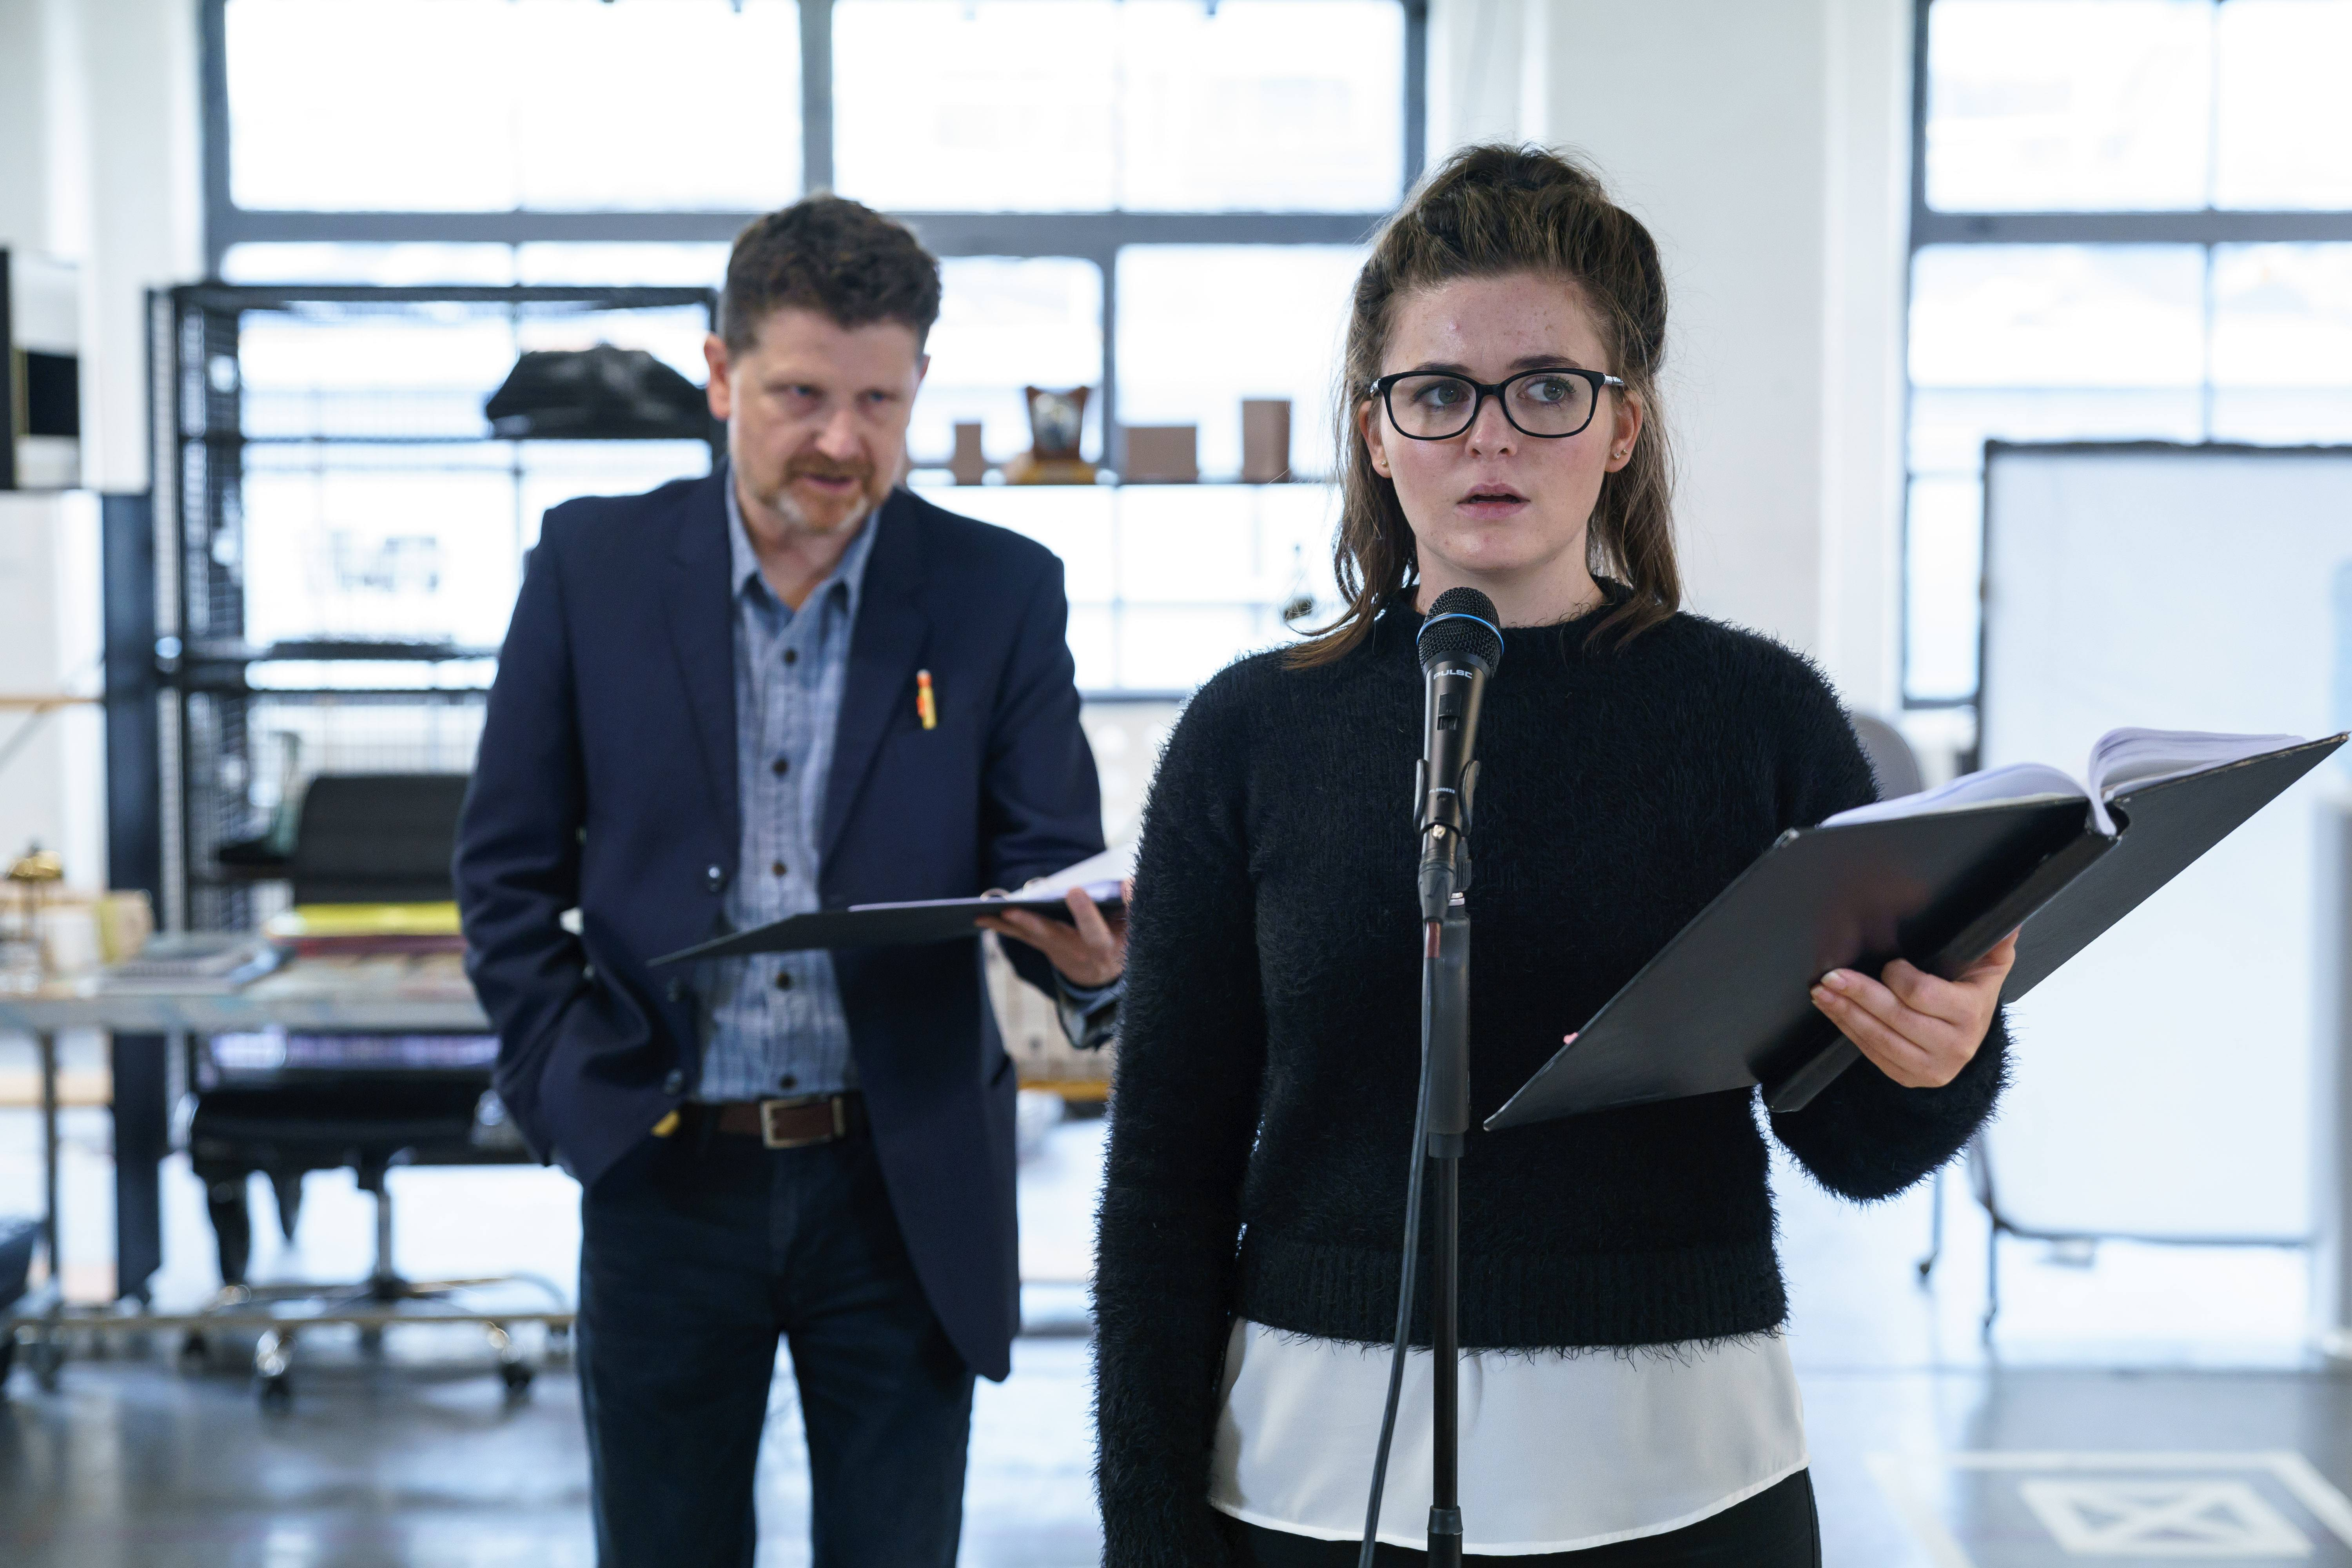 (the fall of) The Master Builder in rehearsals: a gripping reimagining